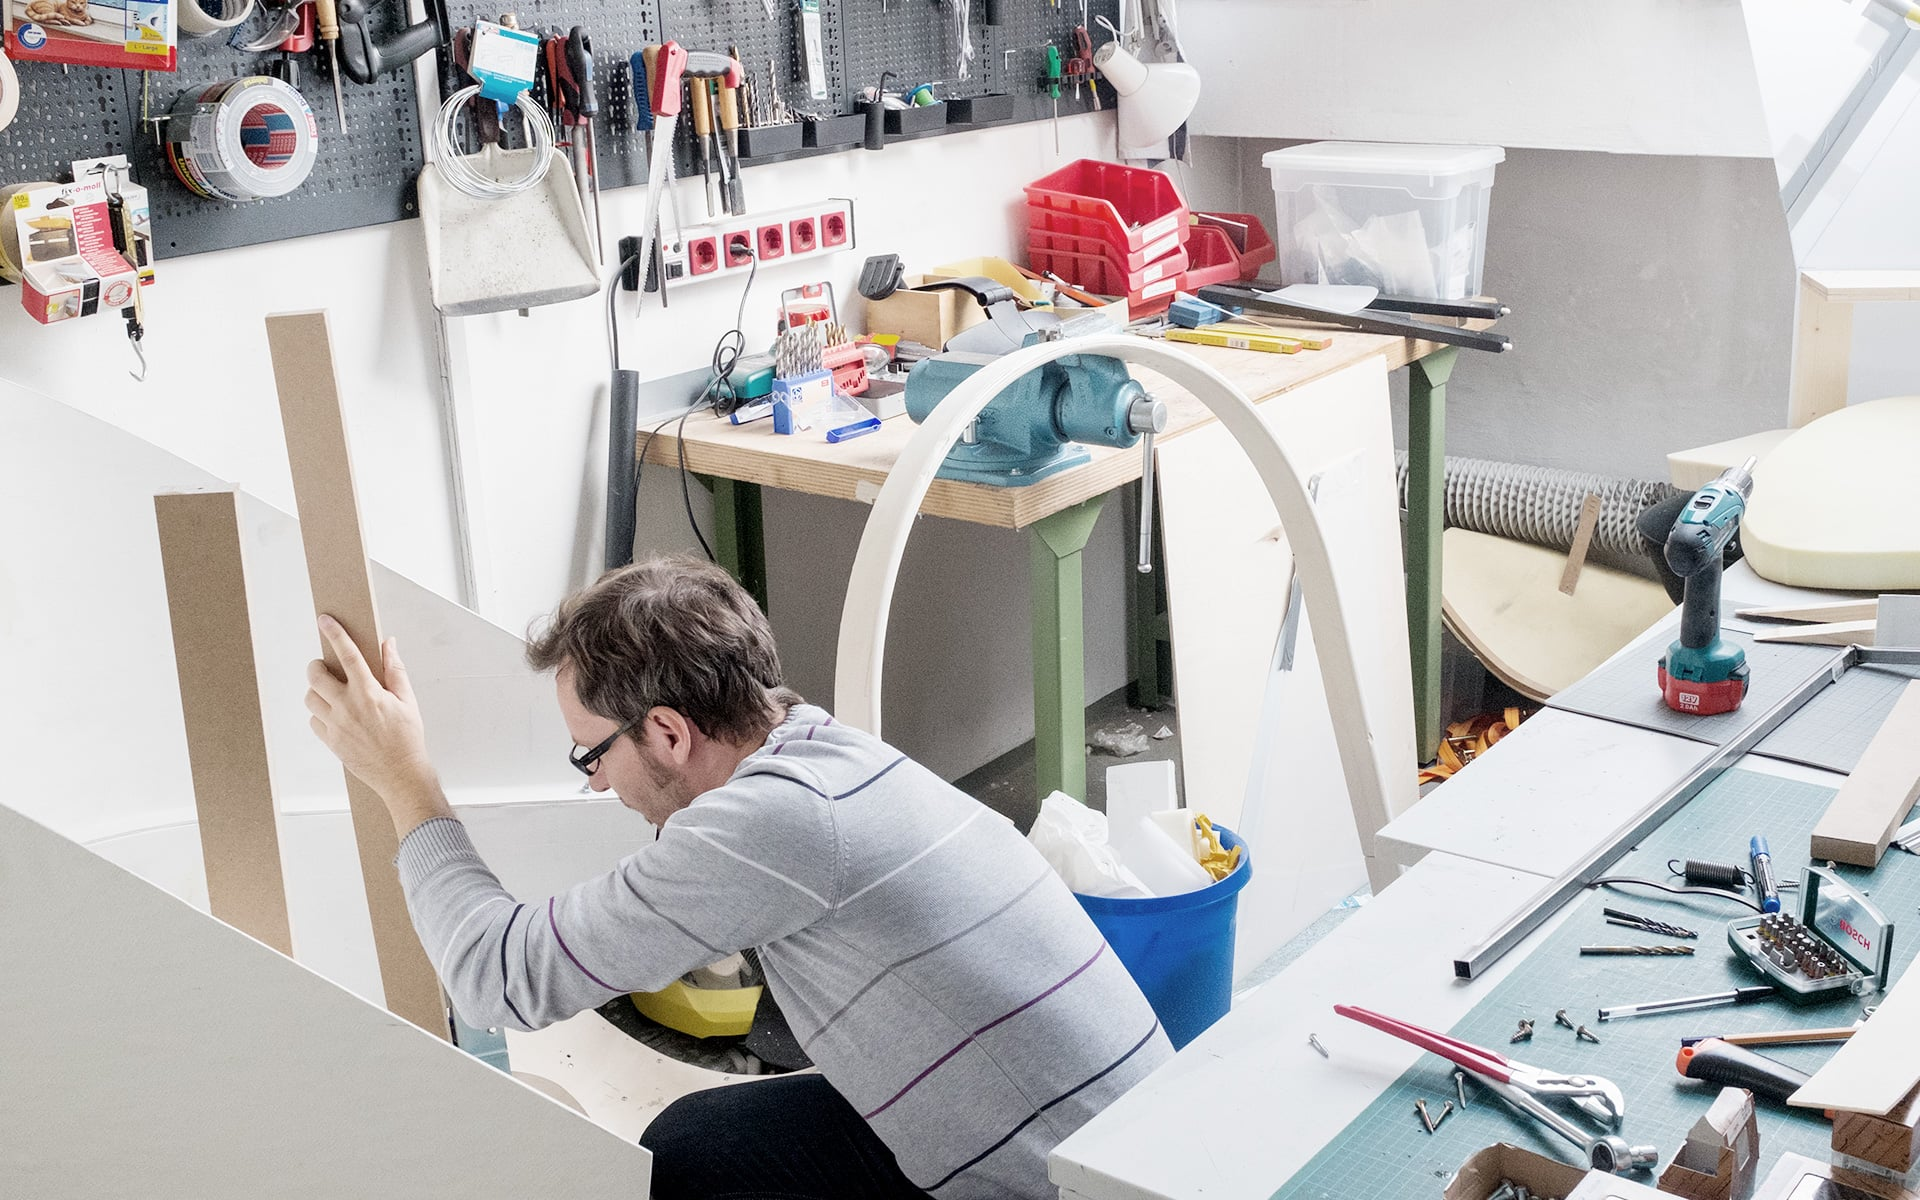 An ITO Design colleague builds a chair prototype at a workbench